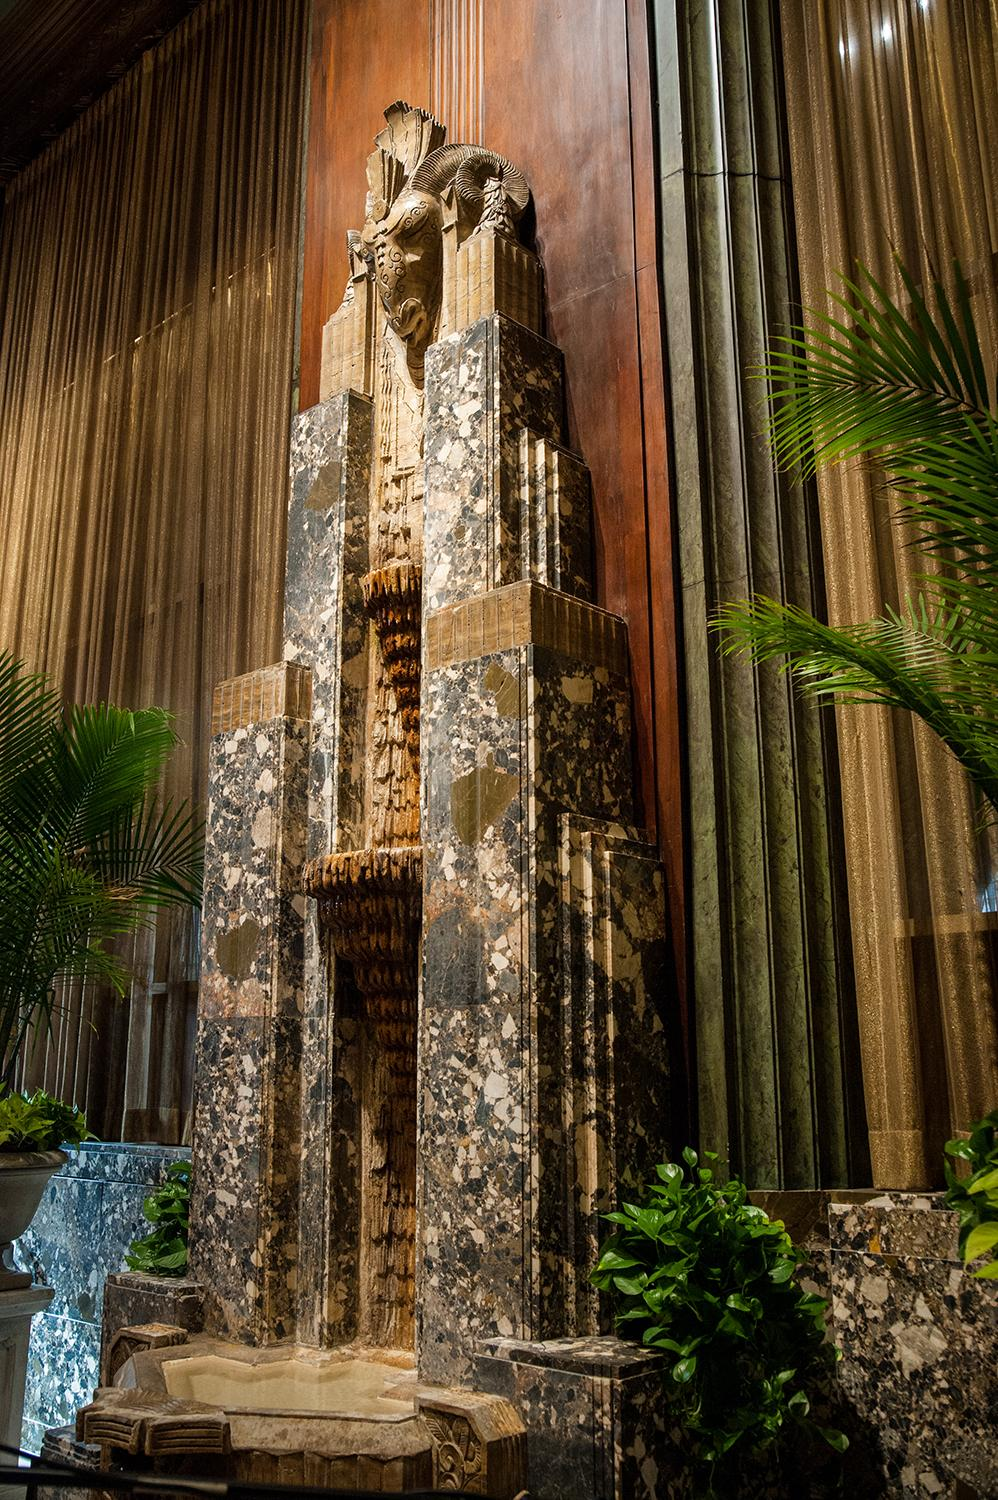 BUILDING: Hilton Cincinnati Netherland Plaza / LOCATION: 35 W 5th St (45202) -- Downtown / TIDBIT: The Rookwood fountain, found inside Orchids at Palm Court / IMAGE: Melissa Doss Sliney